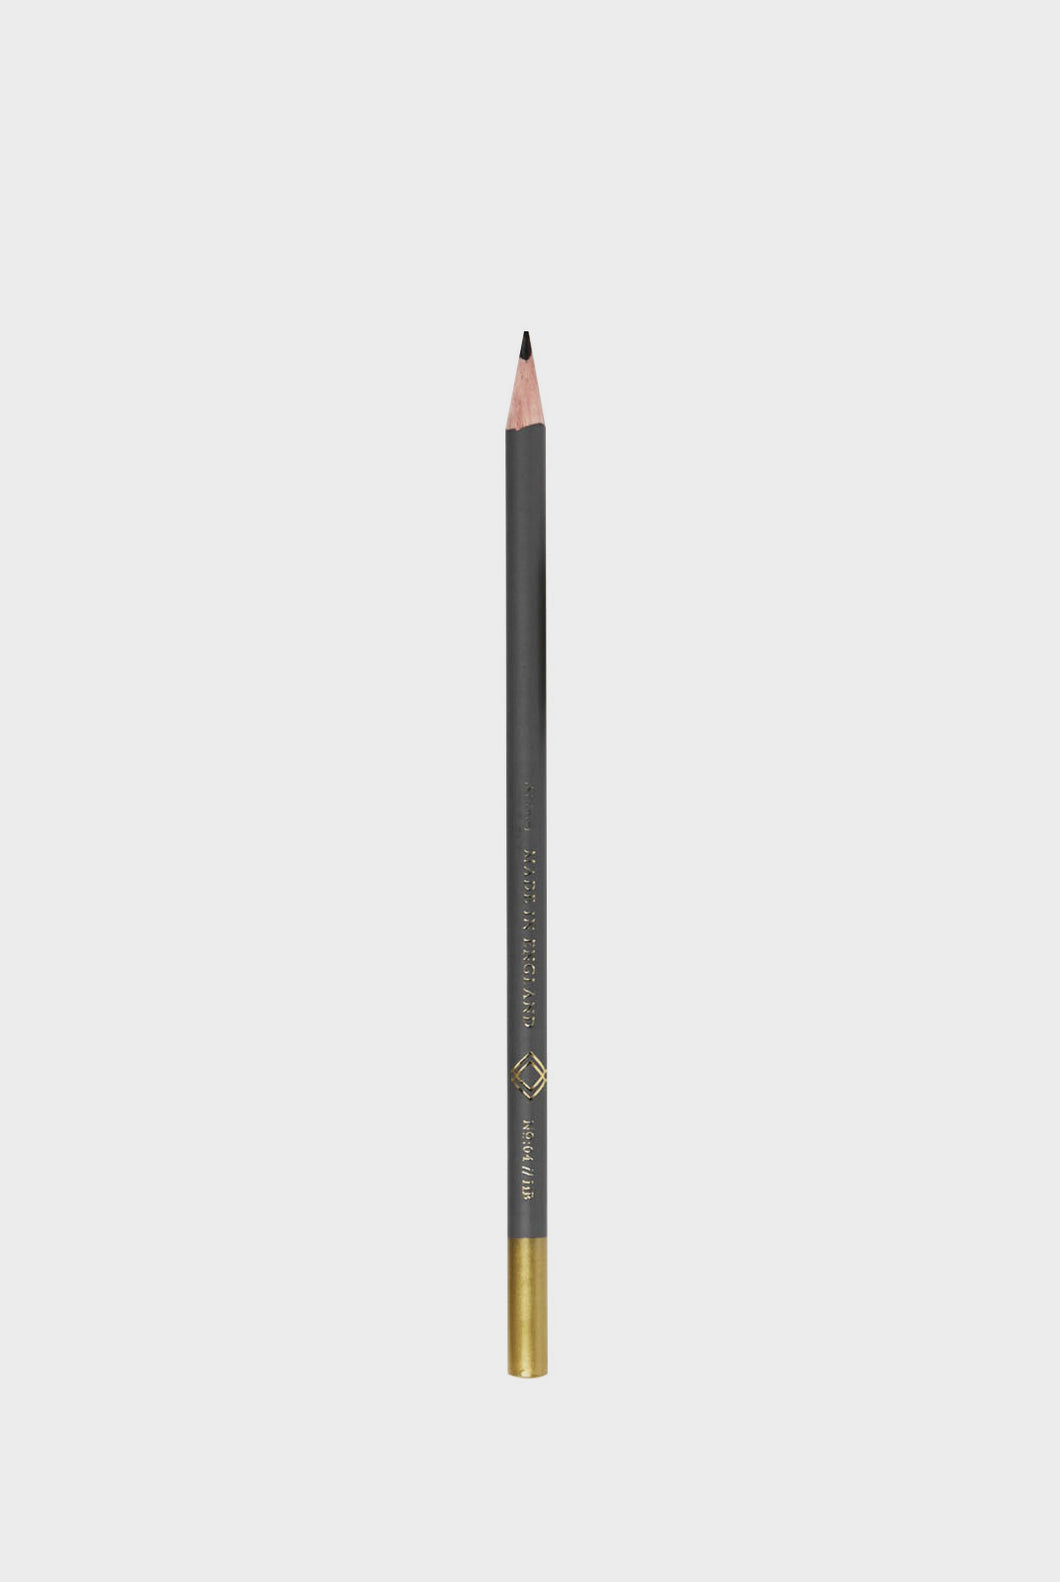 Katie Leamon - Single Pencil - HB - Dark Grey